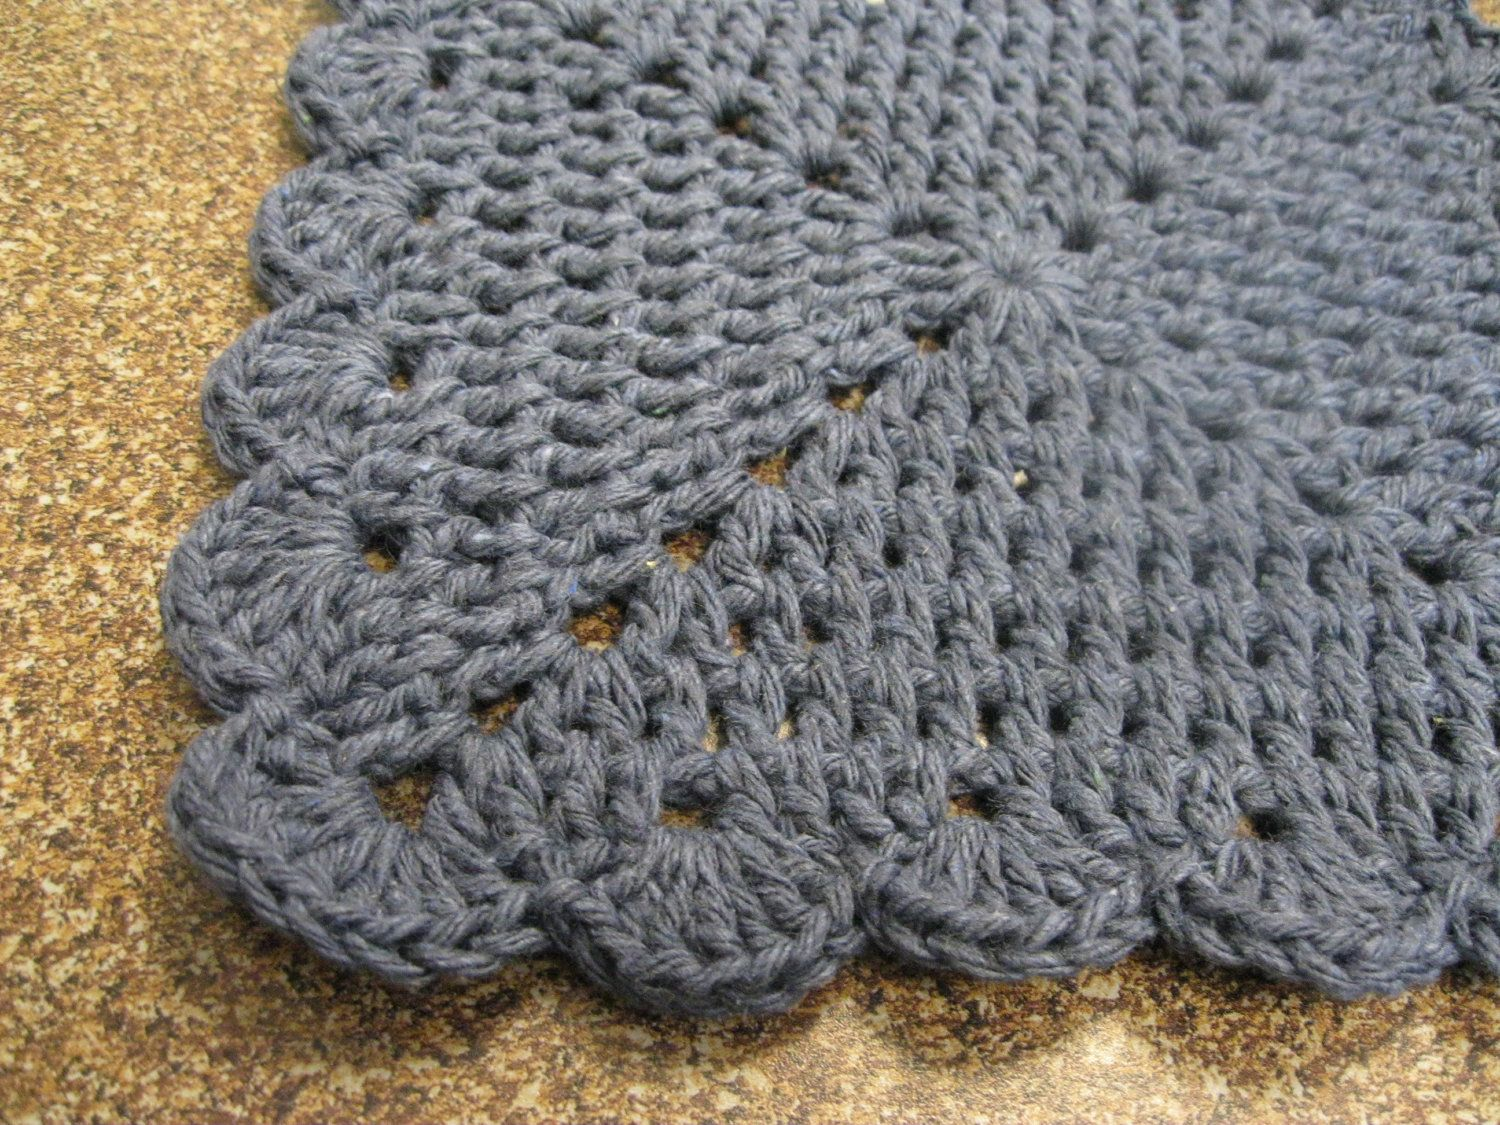 Crochet  Wash Cloth  Scalloped Navy Granny by afewlittlebumps, $4.00